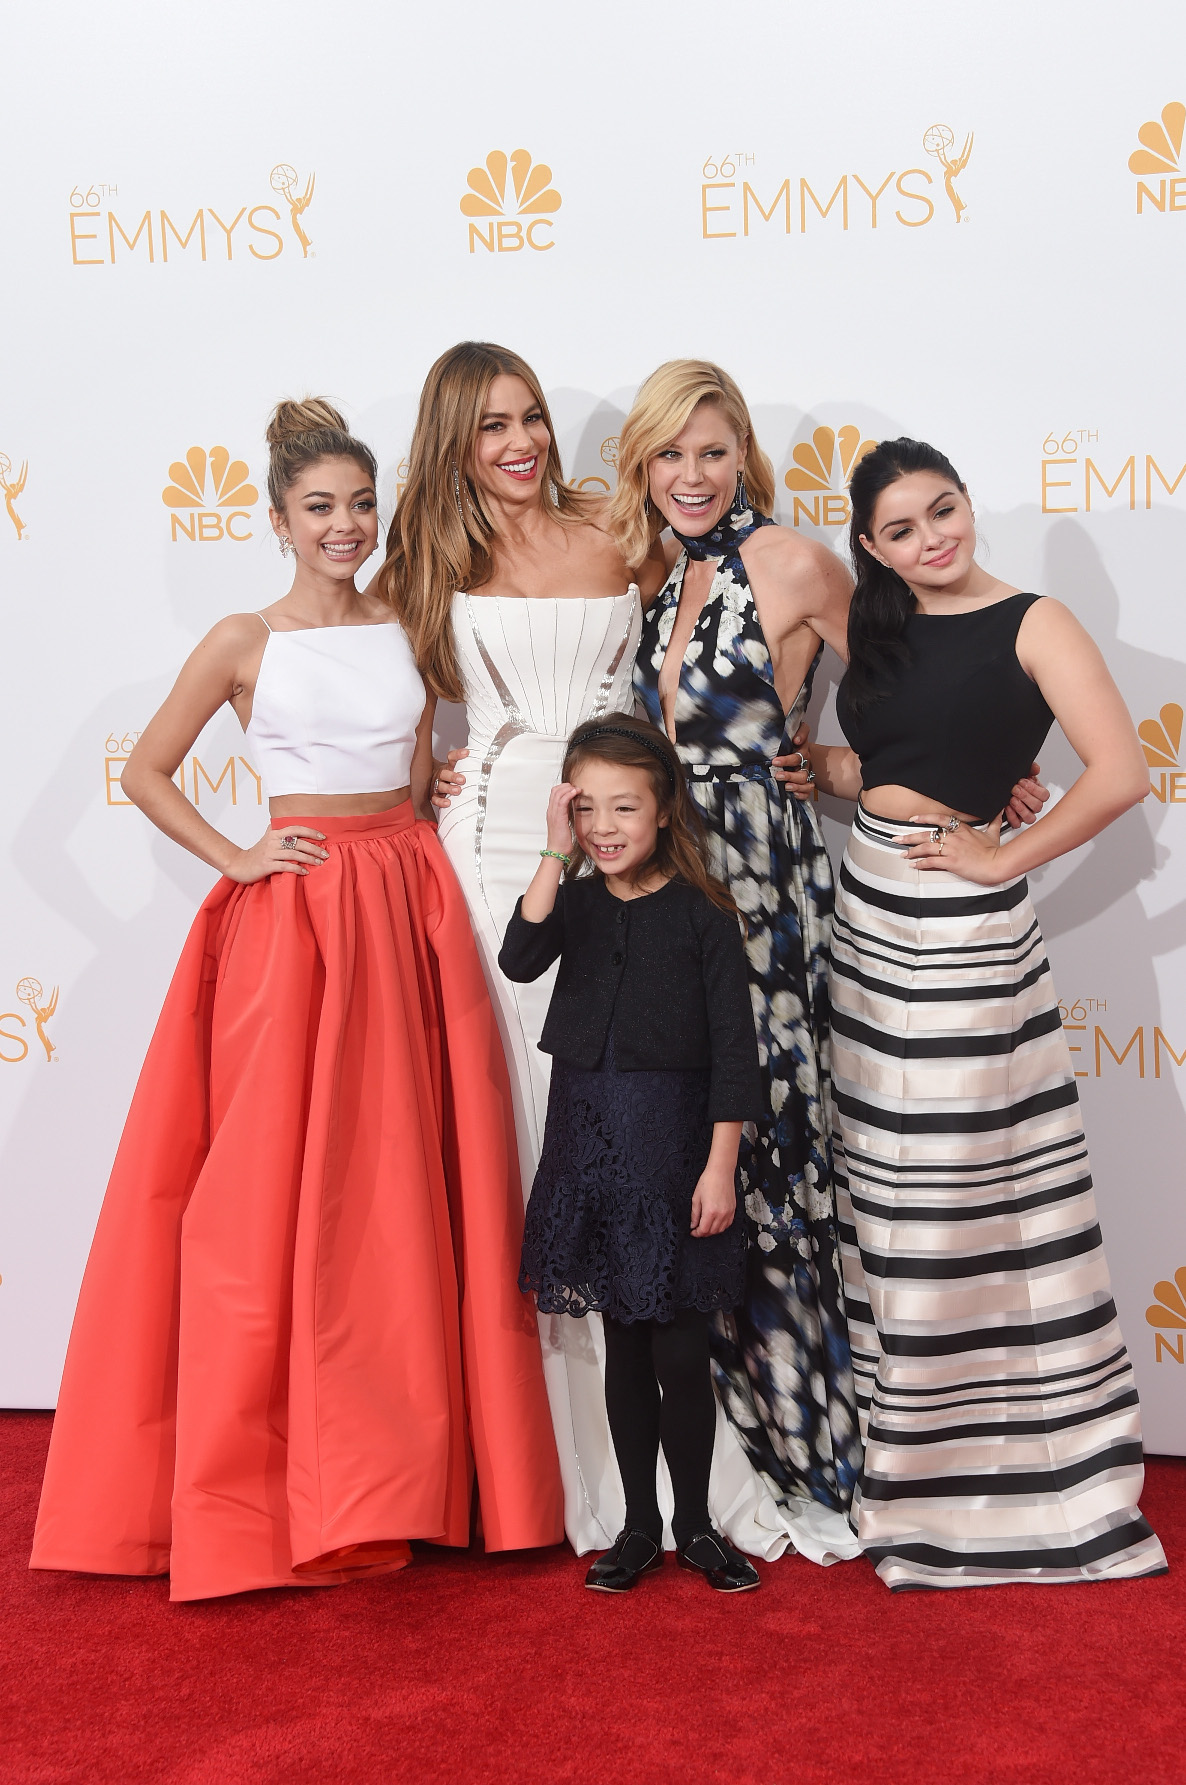 LOS ANGELES, CA - AUGUST 25:  Actresses Sarah Hyland, Sofía Vergara, Aubrey Anderson-Emmons, Julie Bowen and Ariel Winter, winners of the Outstanding Comedy Series Award for